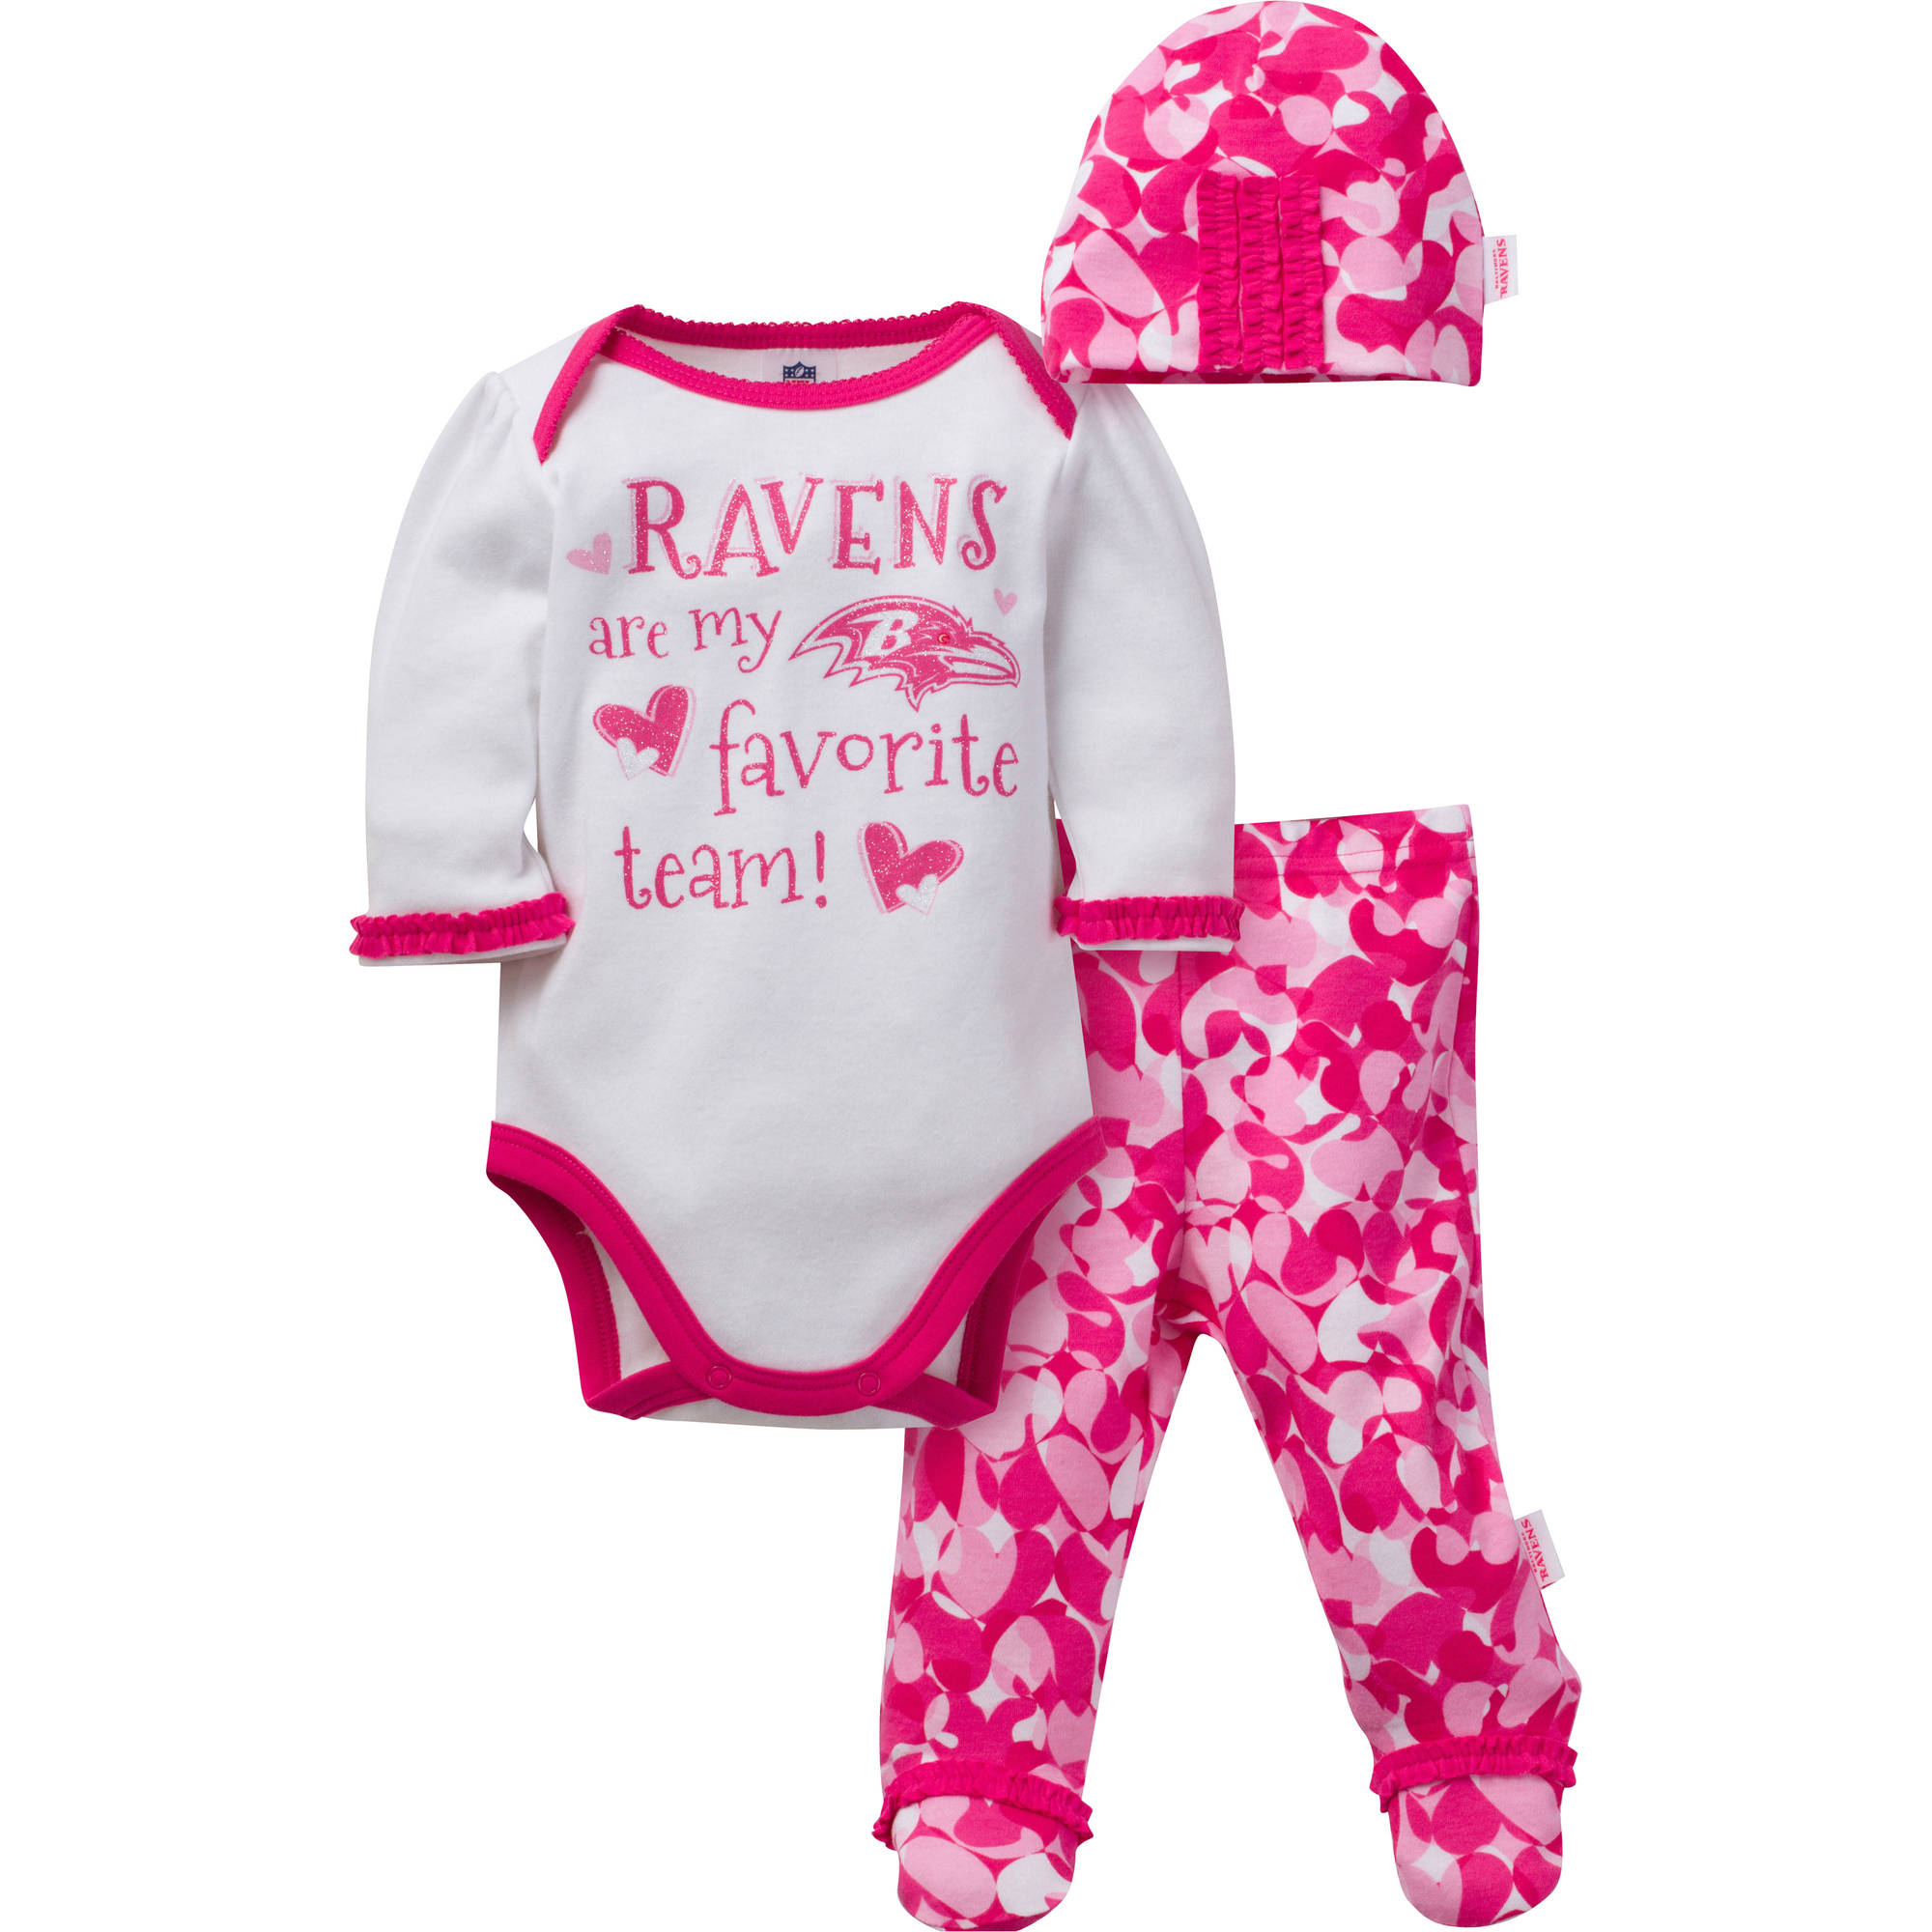 NFL Baltimore Ravens Baby Girls Bodysuit, Pant and Cap Outfit Set, 3-Piece